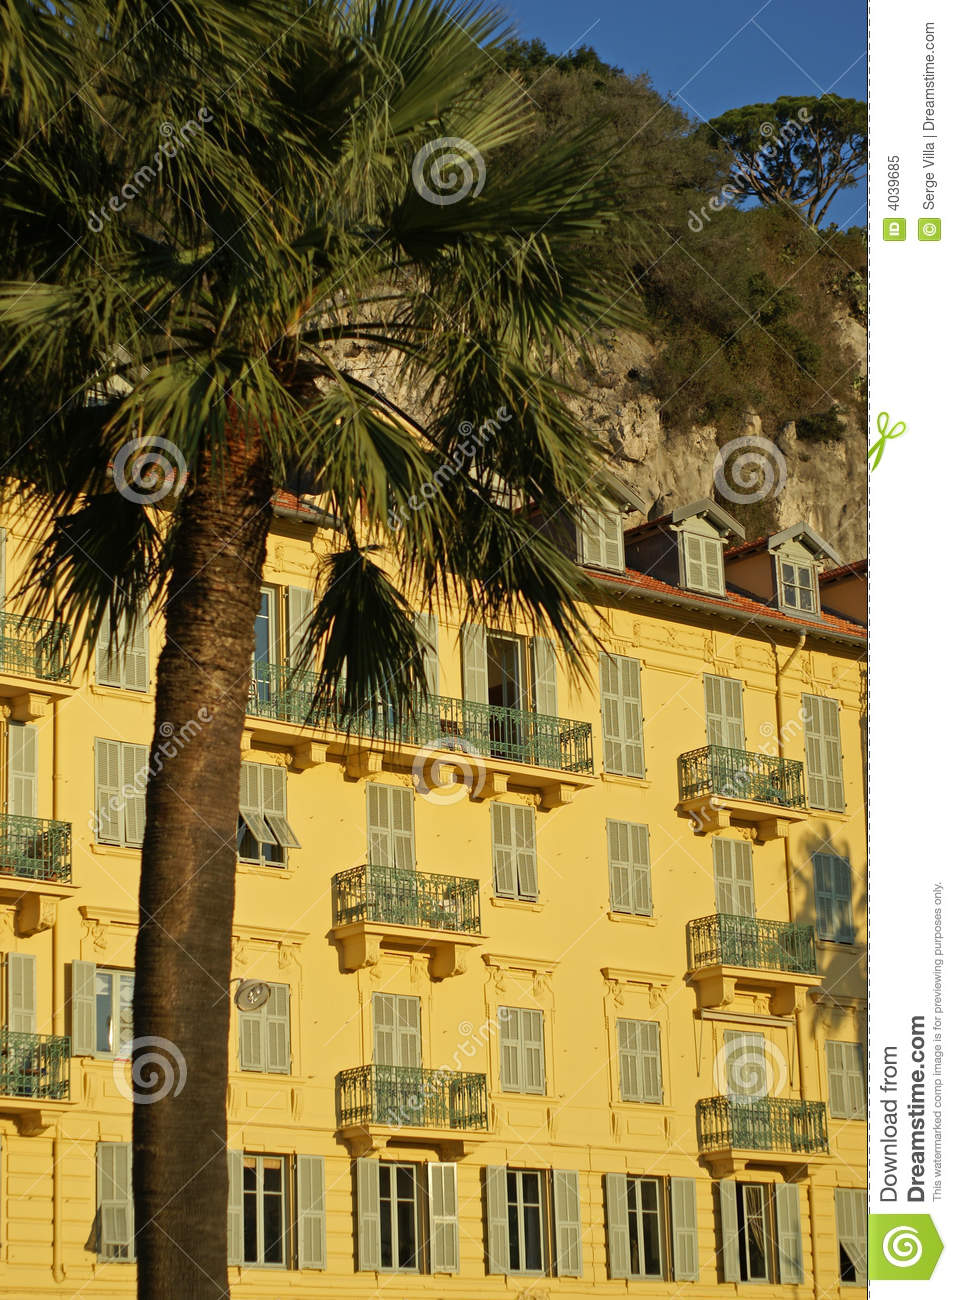 Nice building royalty free stock photo image 4039685 for Nice building images